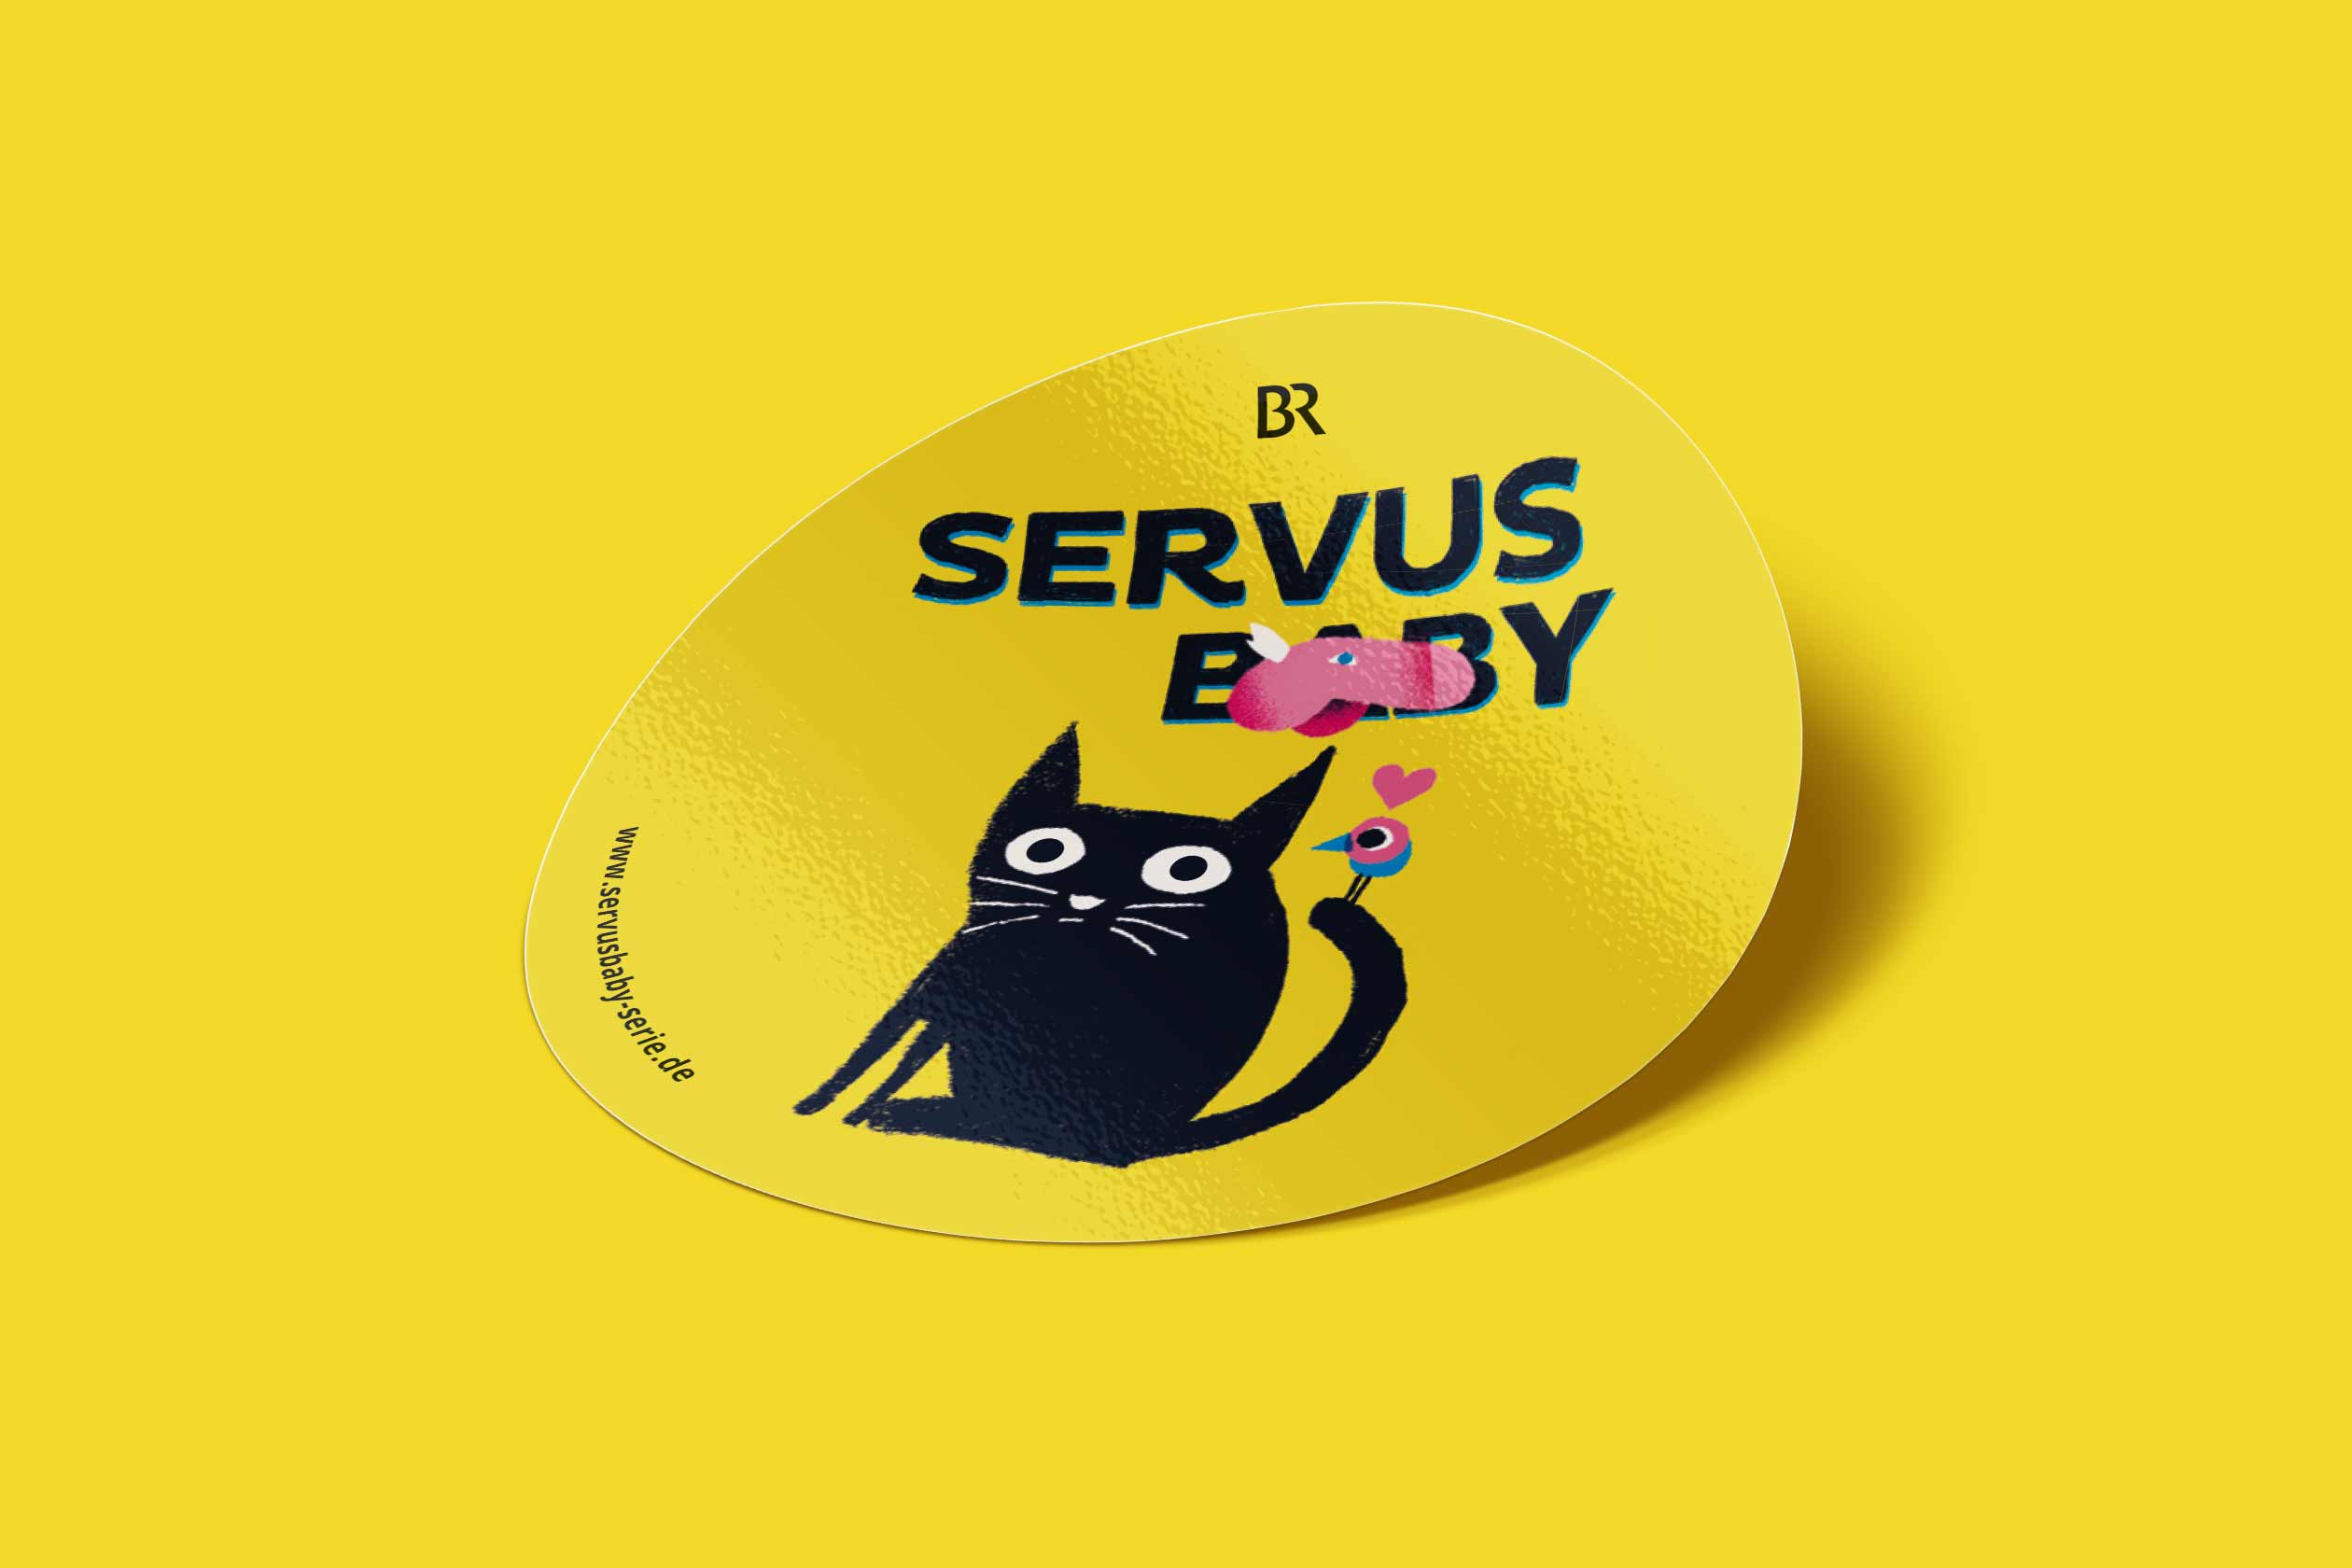 ServusBaby-sticker-03